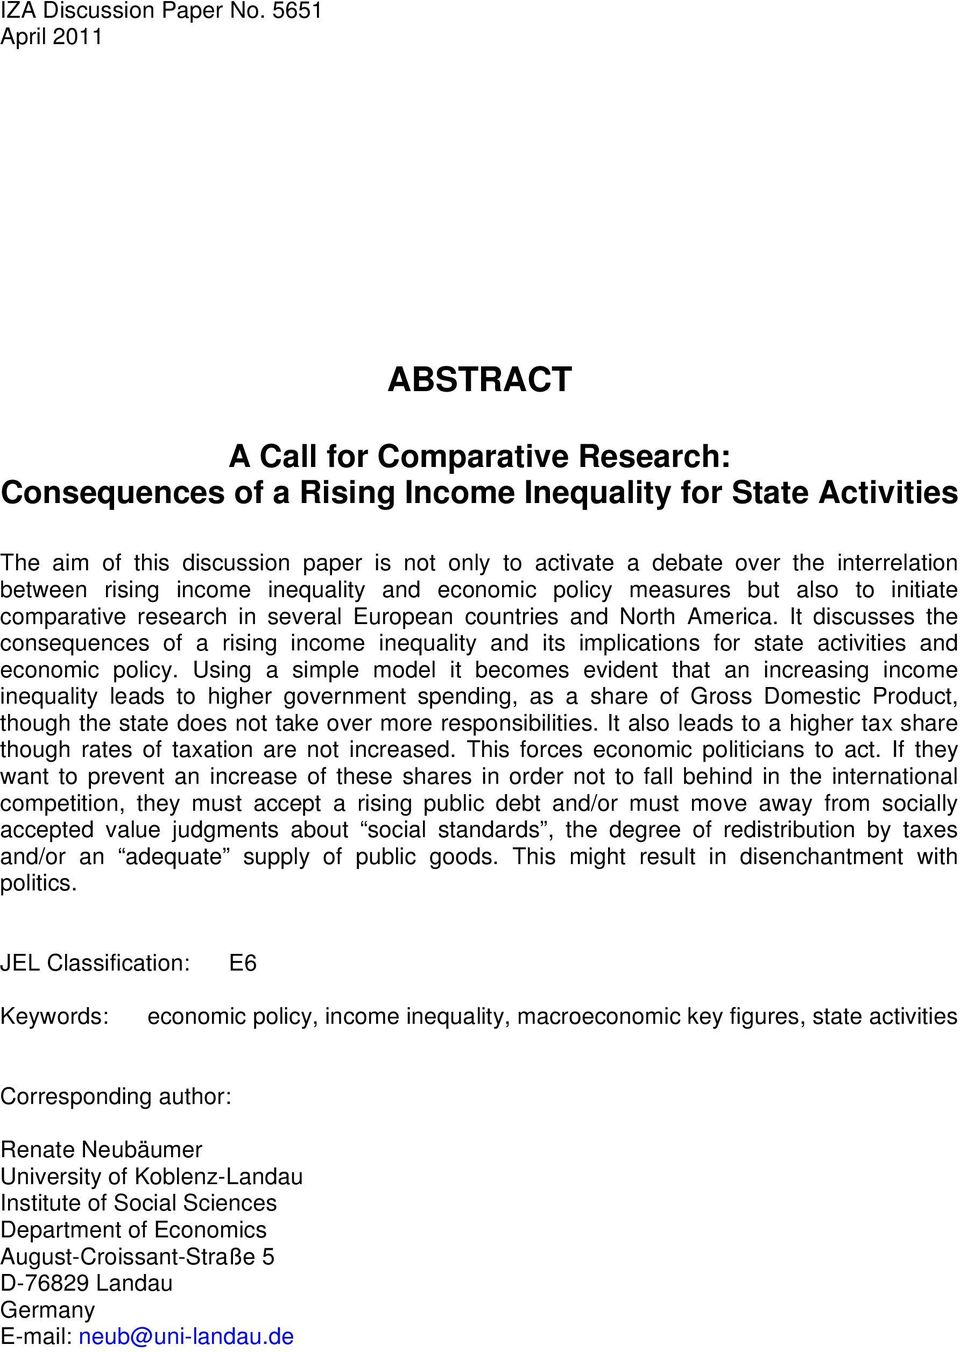 discusses the consequences of a rising income inequality and its implications for state activities and economic policy Using a simple model it becomes evident that an increasing income inequality